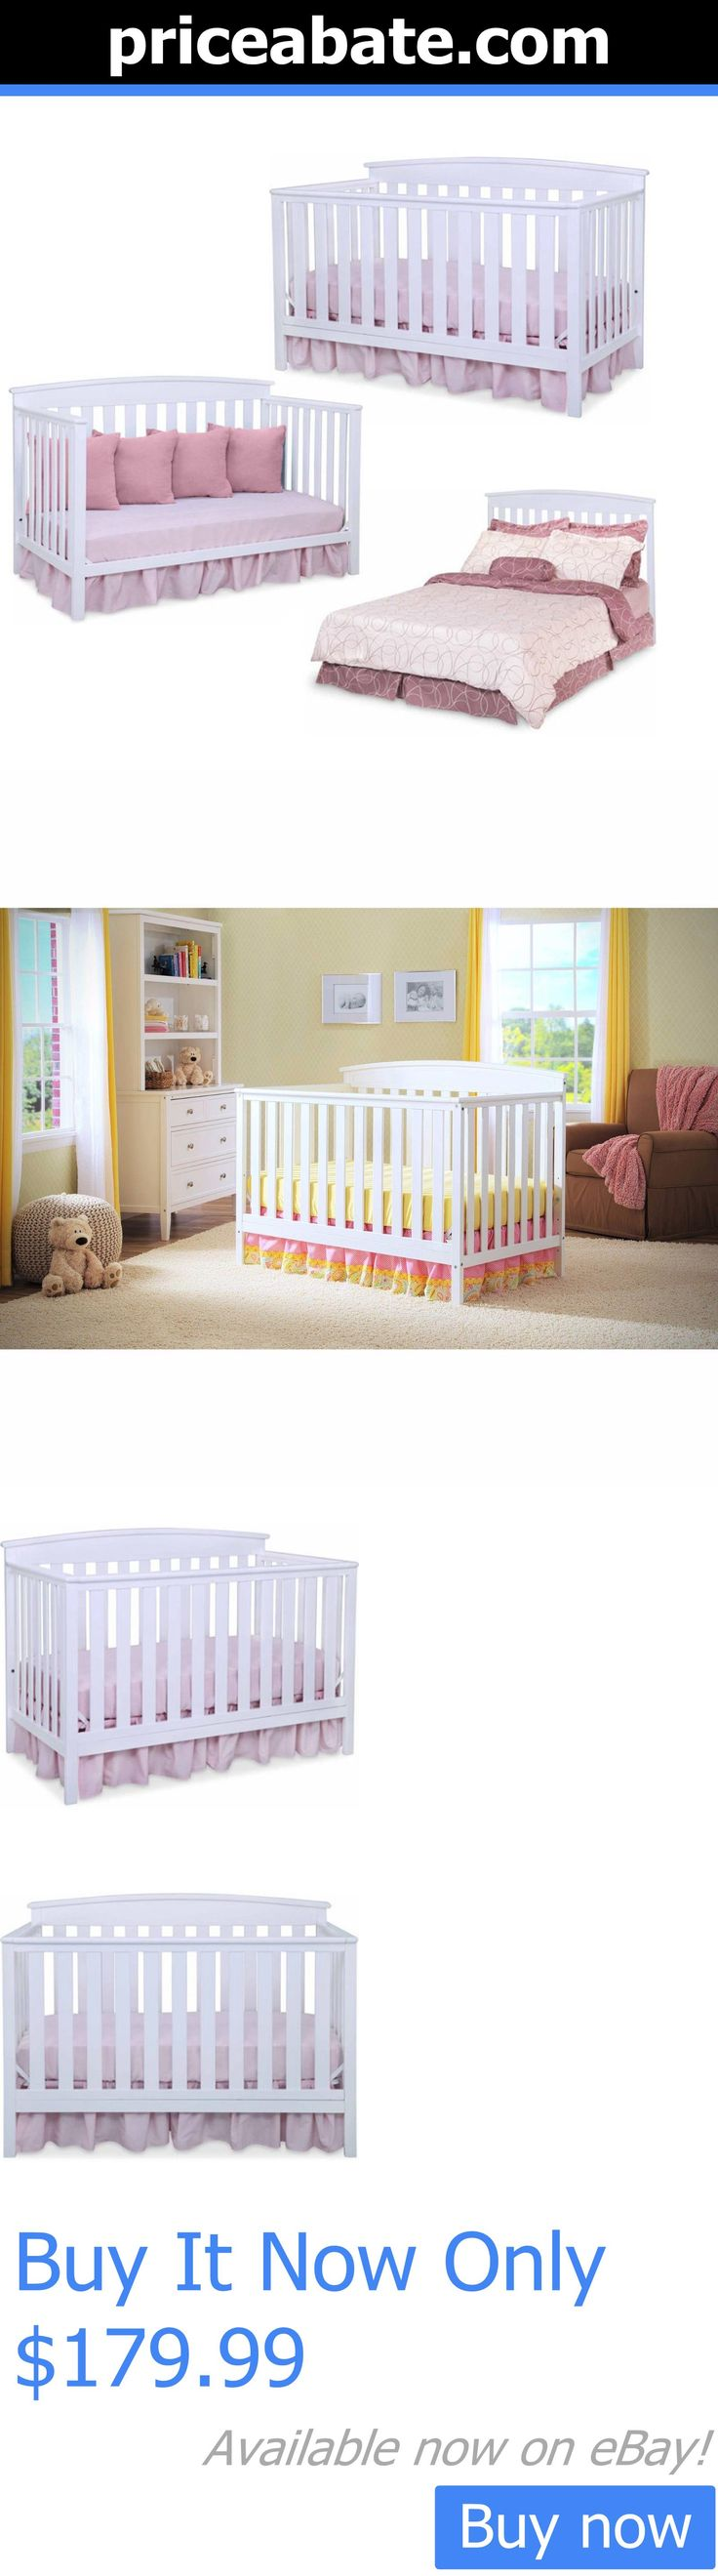 Crib for sale sheffield - Best 25 Convertible Baby Cribs Ideas On Pinterest Baby Furniture Convertible Crib And Grey Childrens Furniture